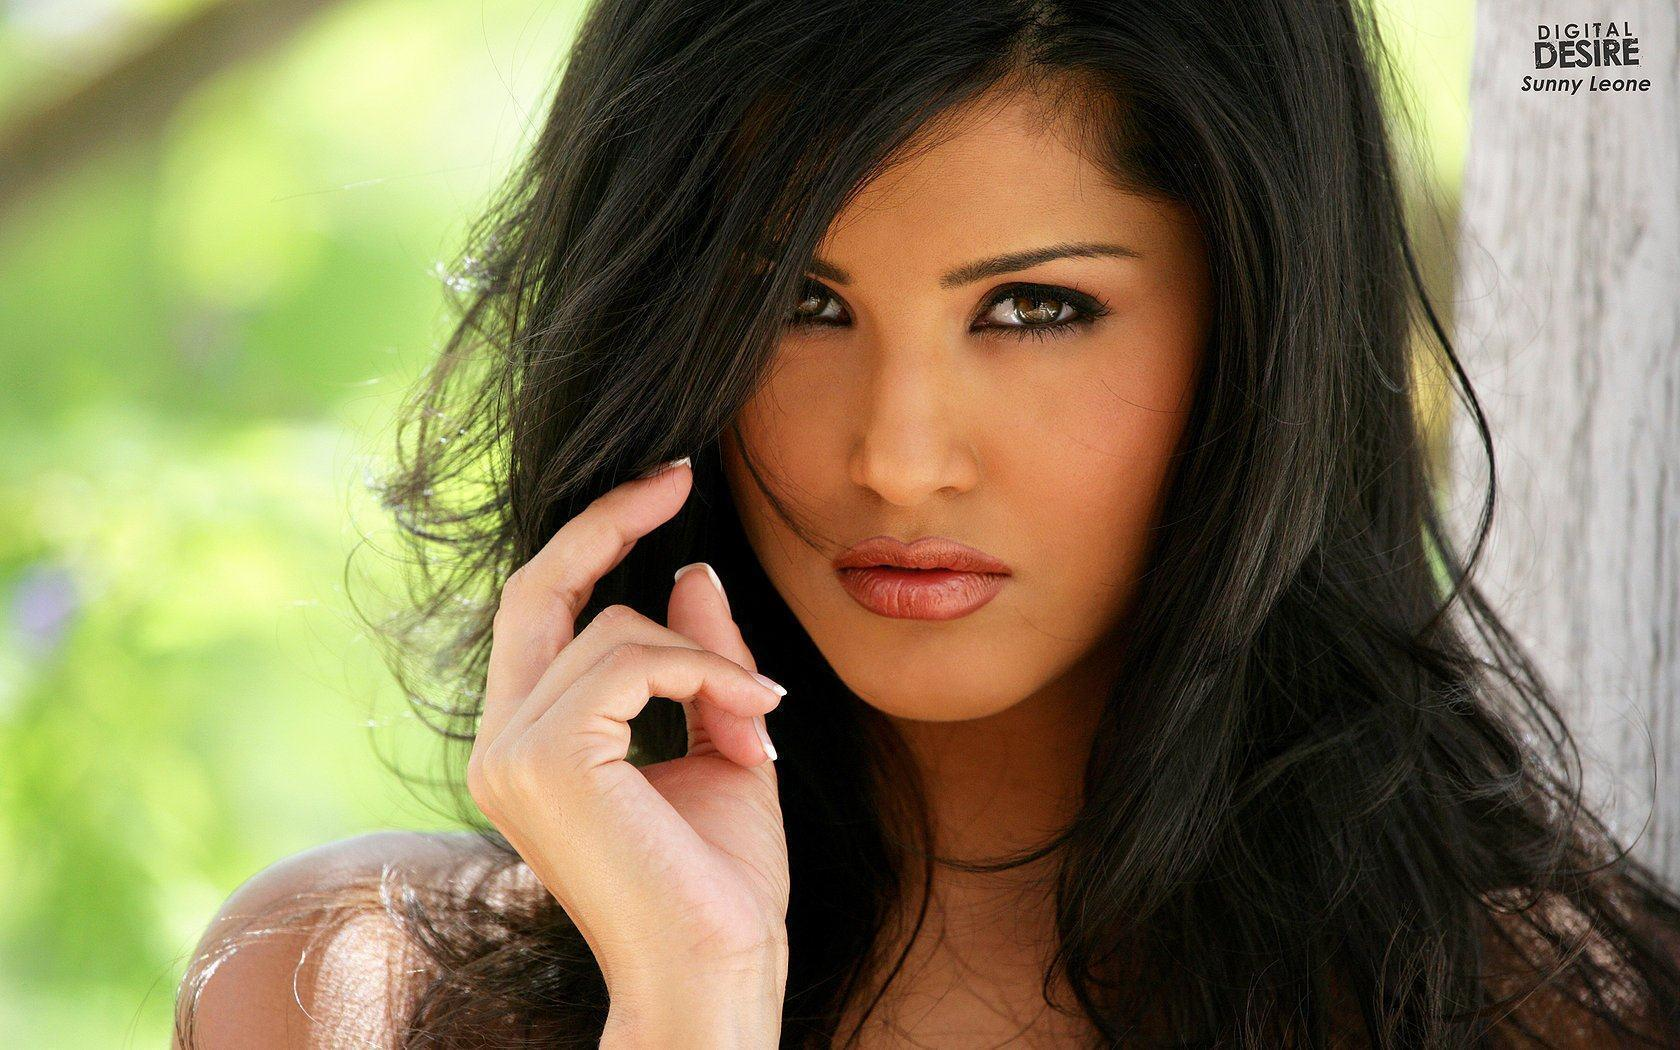 sunny leone desktop wallpapers - wallpaper cave